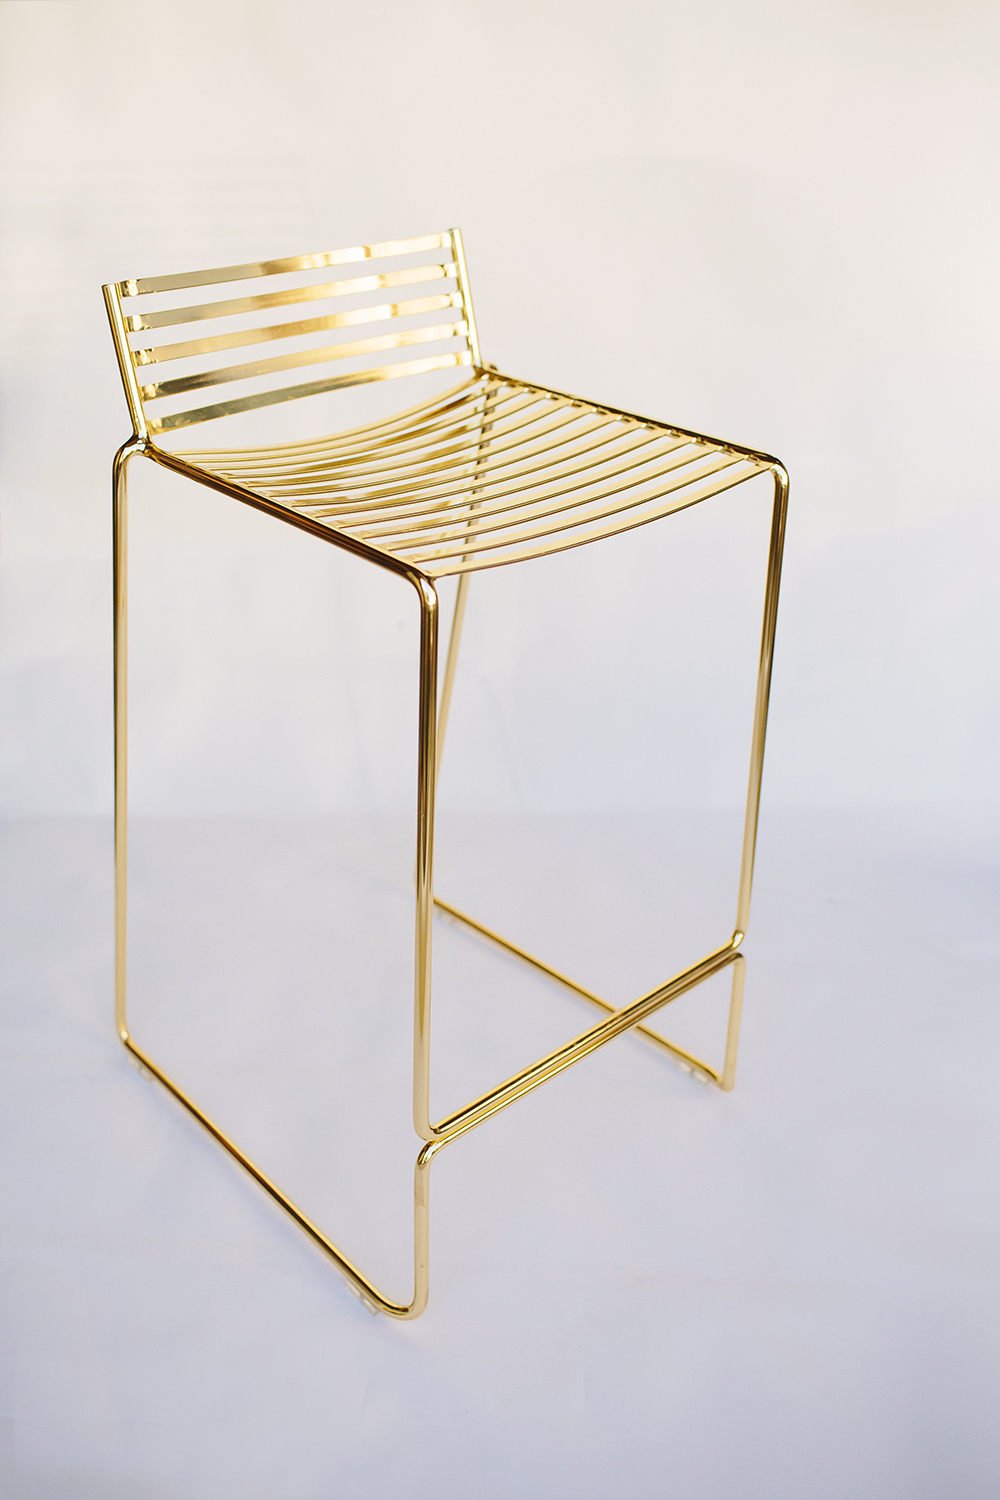 Studio Wire Bar Stool – Gold / $20